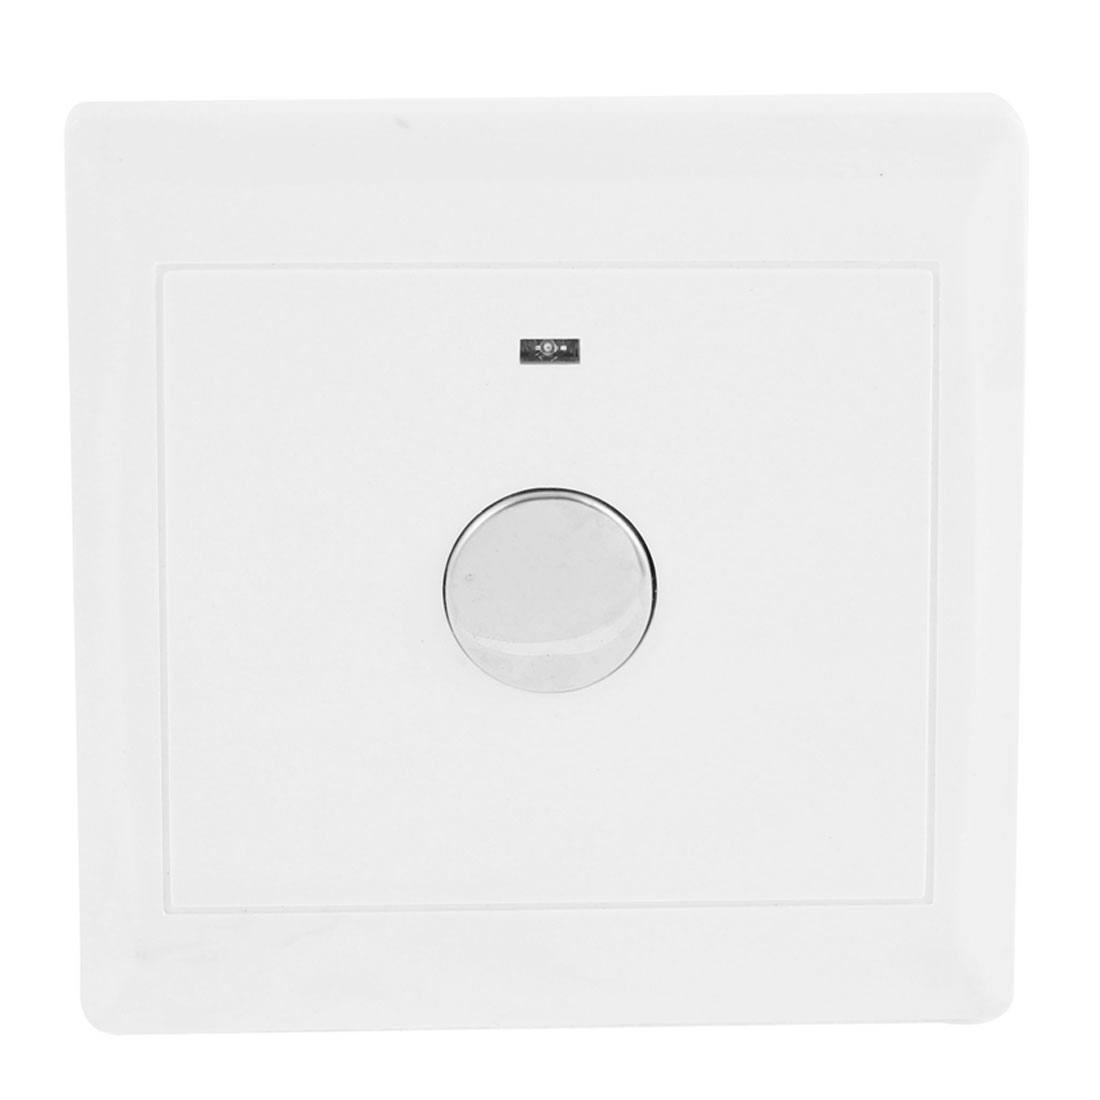 8.6mm x 8.6mm White Plastic Wall Mounted Energy Saving Touch Sensor Time Delay Switch AC 220V